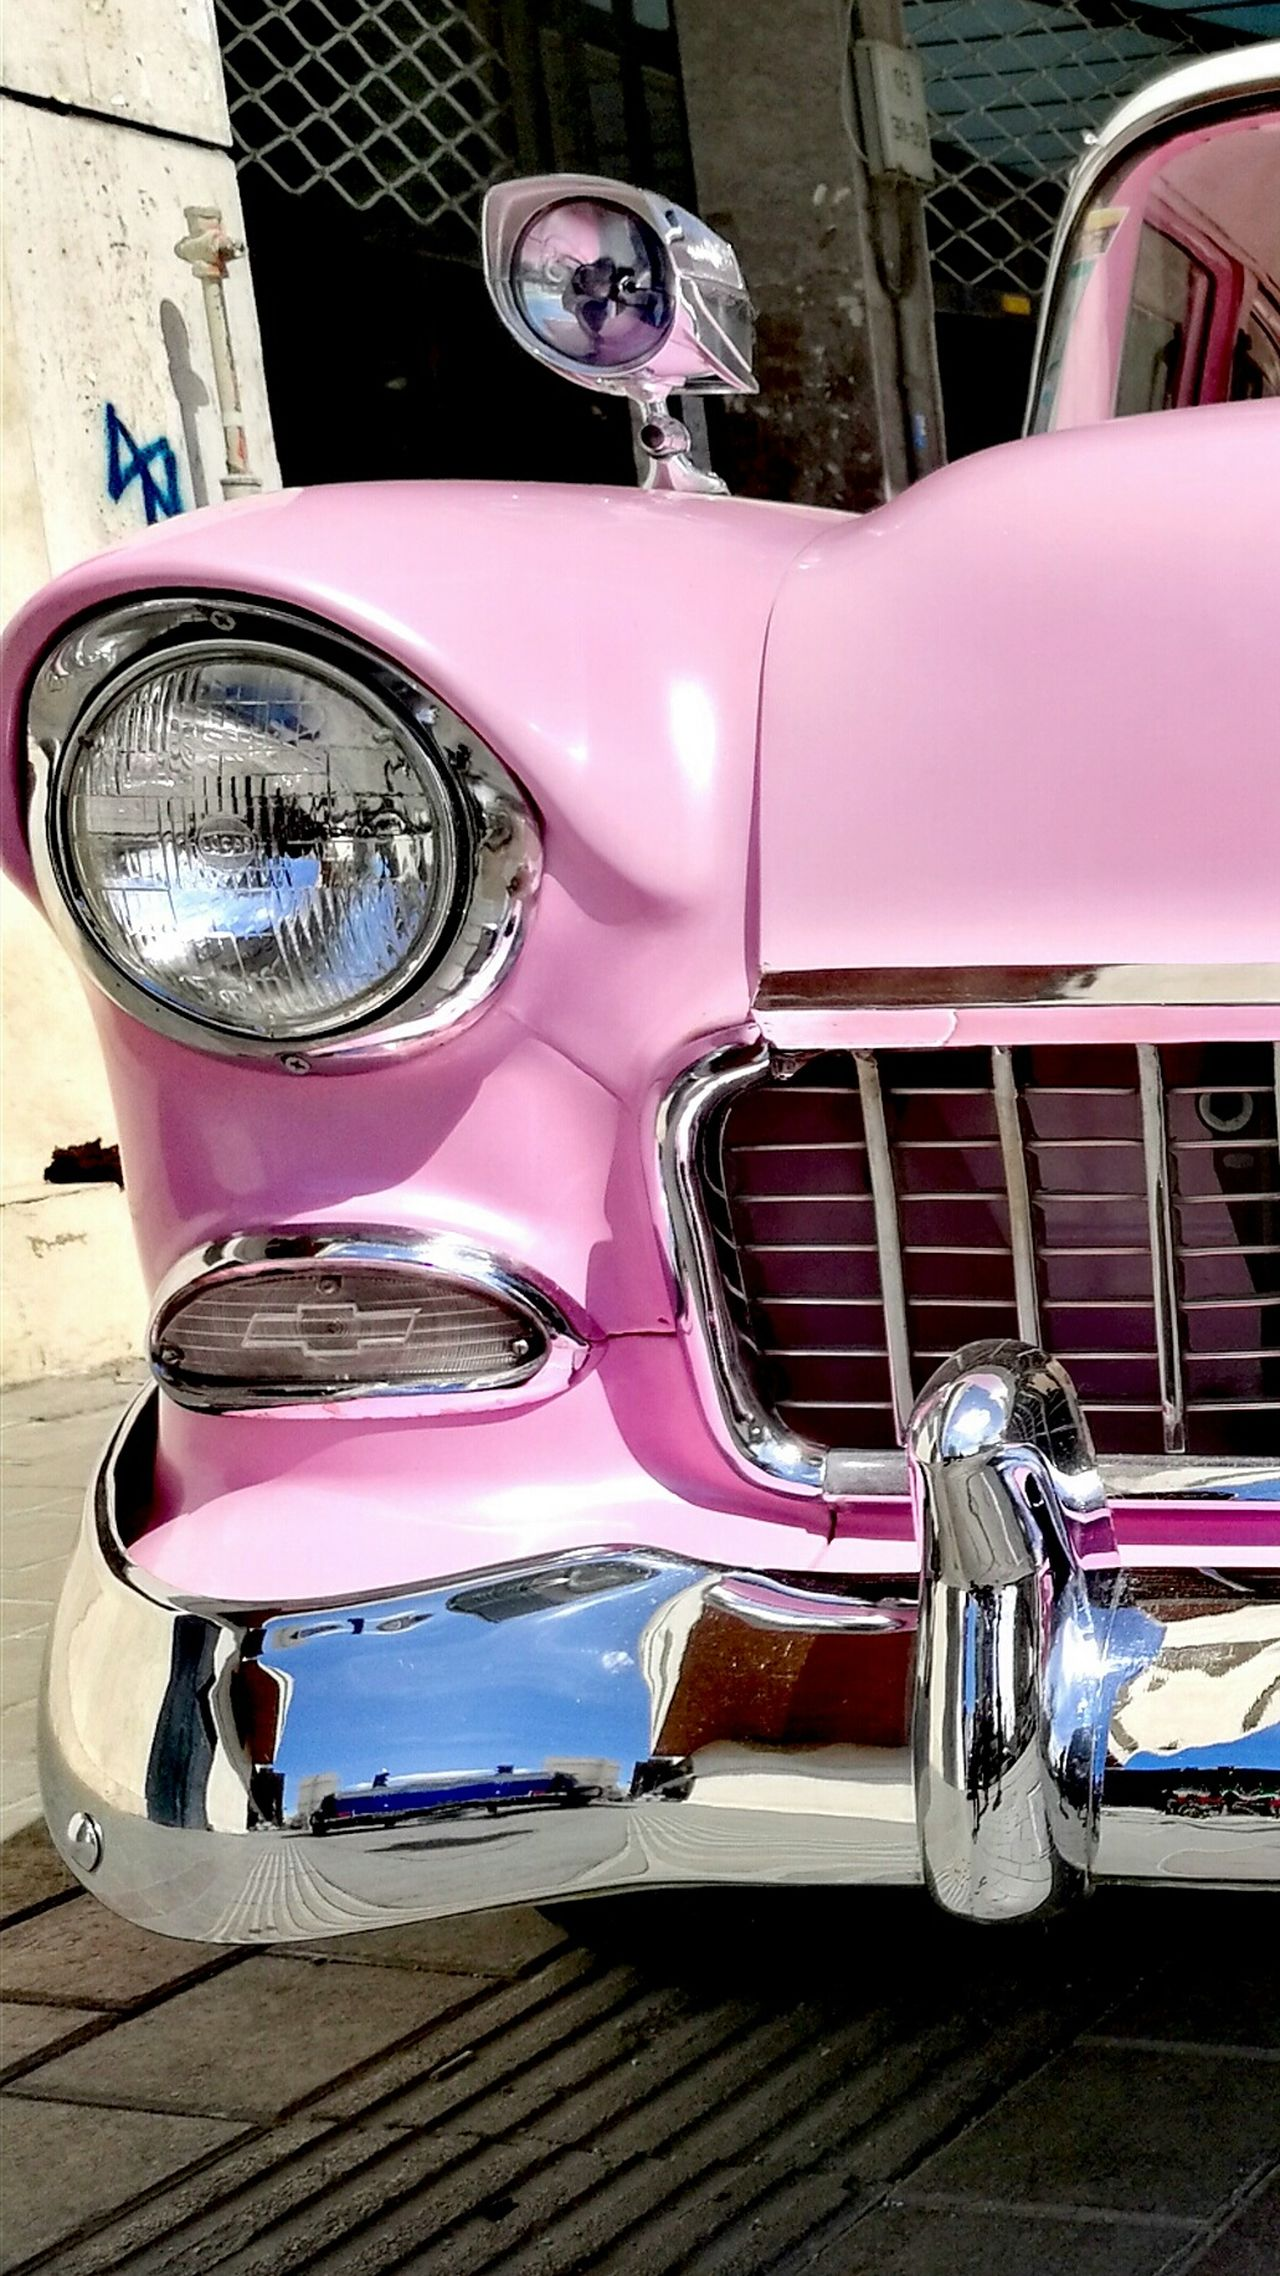 Millennial Pink Transportation Car Pink Color Mode Of Transport Land Vehicle Outdoors Old-fashioned No People Collector's Car Customized Day Streetphotography Adapted To The City Street Photography City Old Car Vehicle Mirror Luxury Transportation EyeEmNewHere Close-up Beauty City Life Happiness